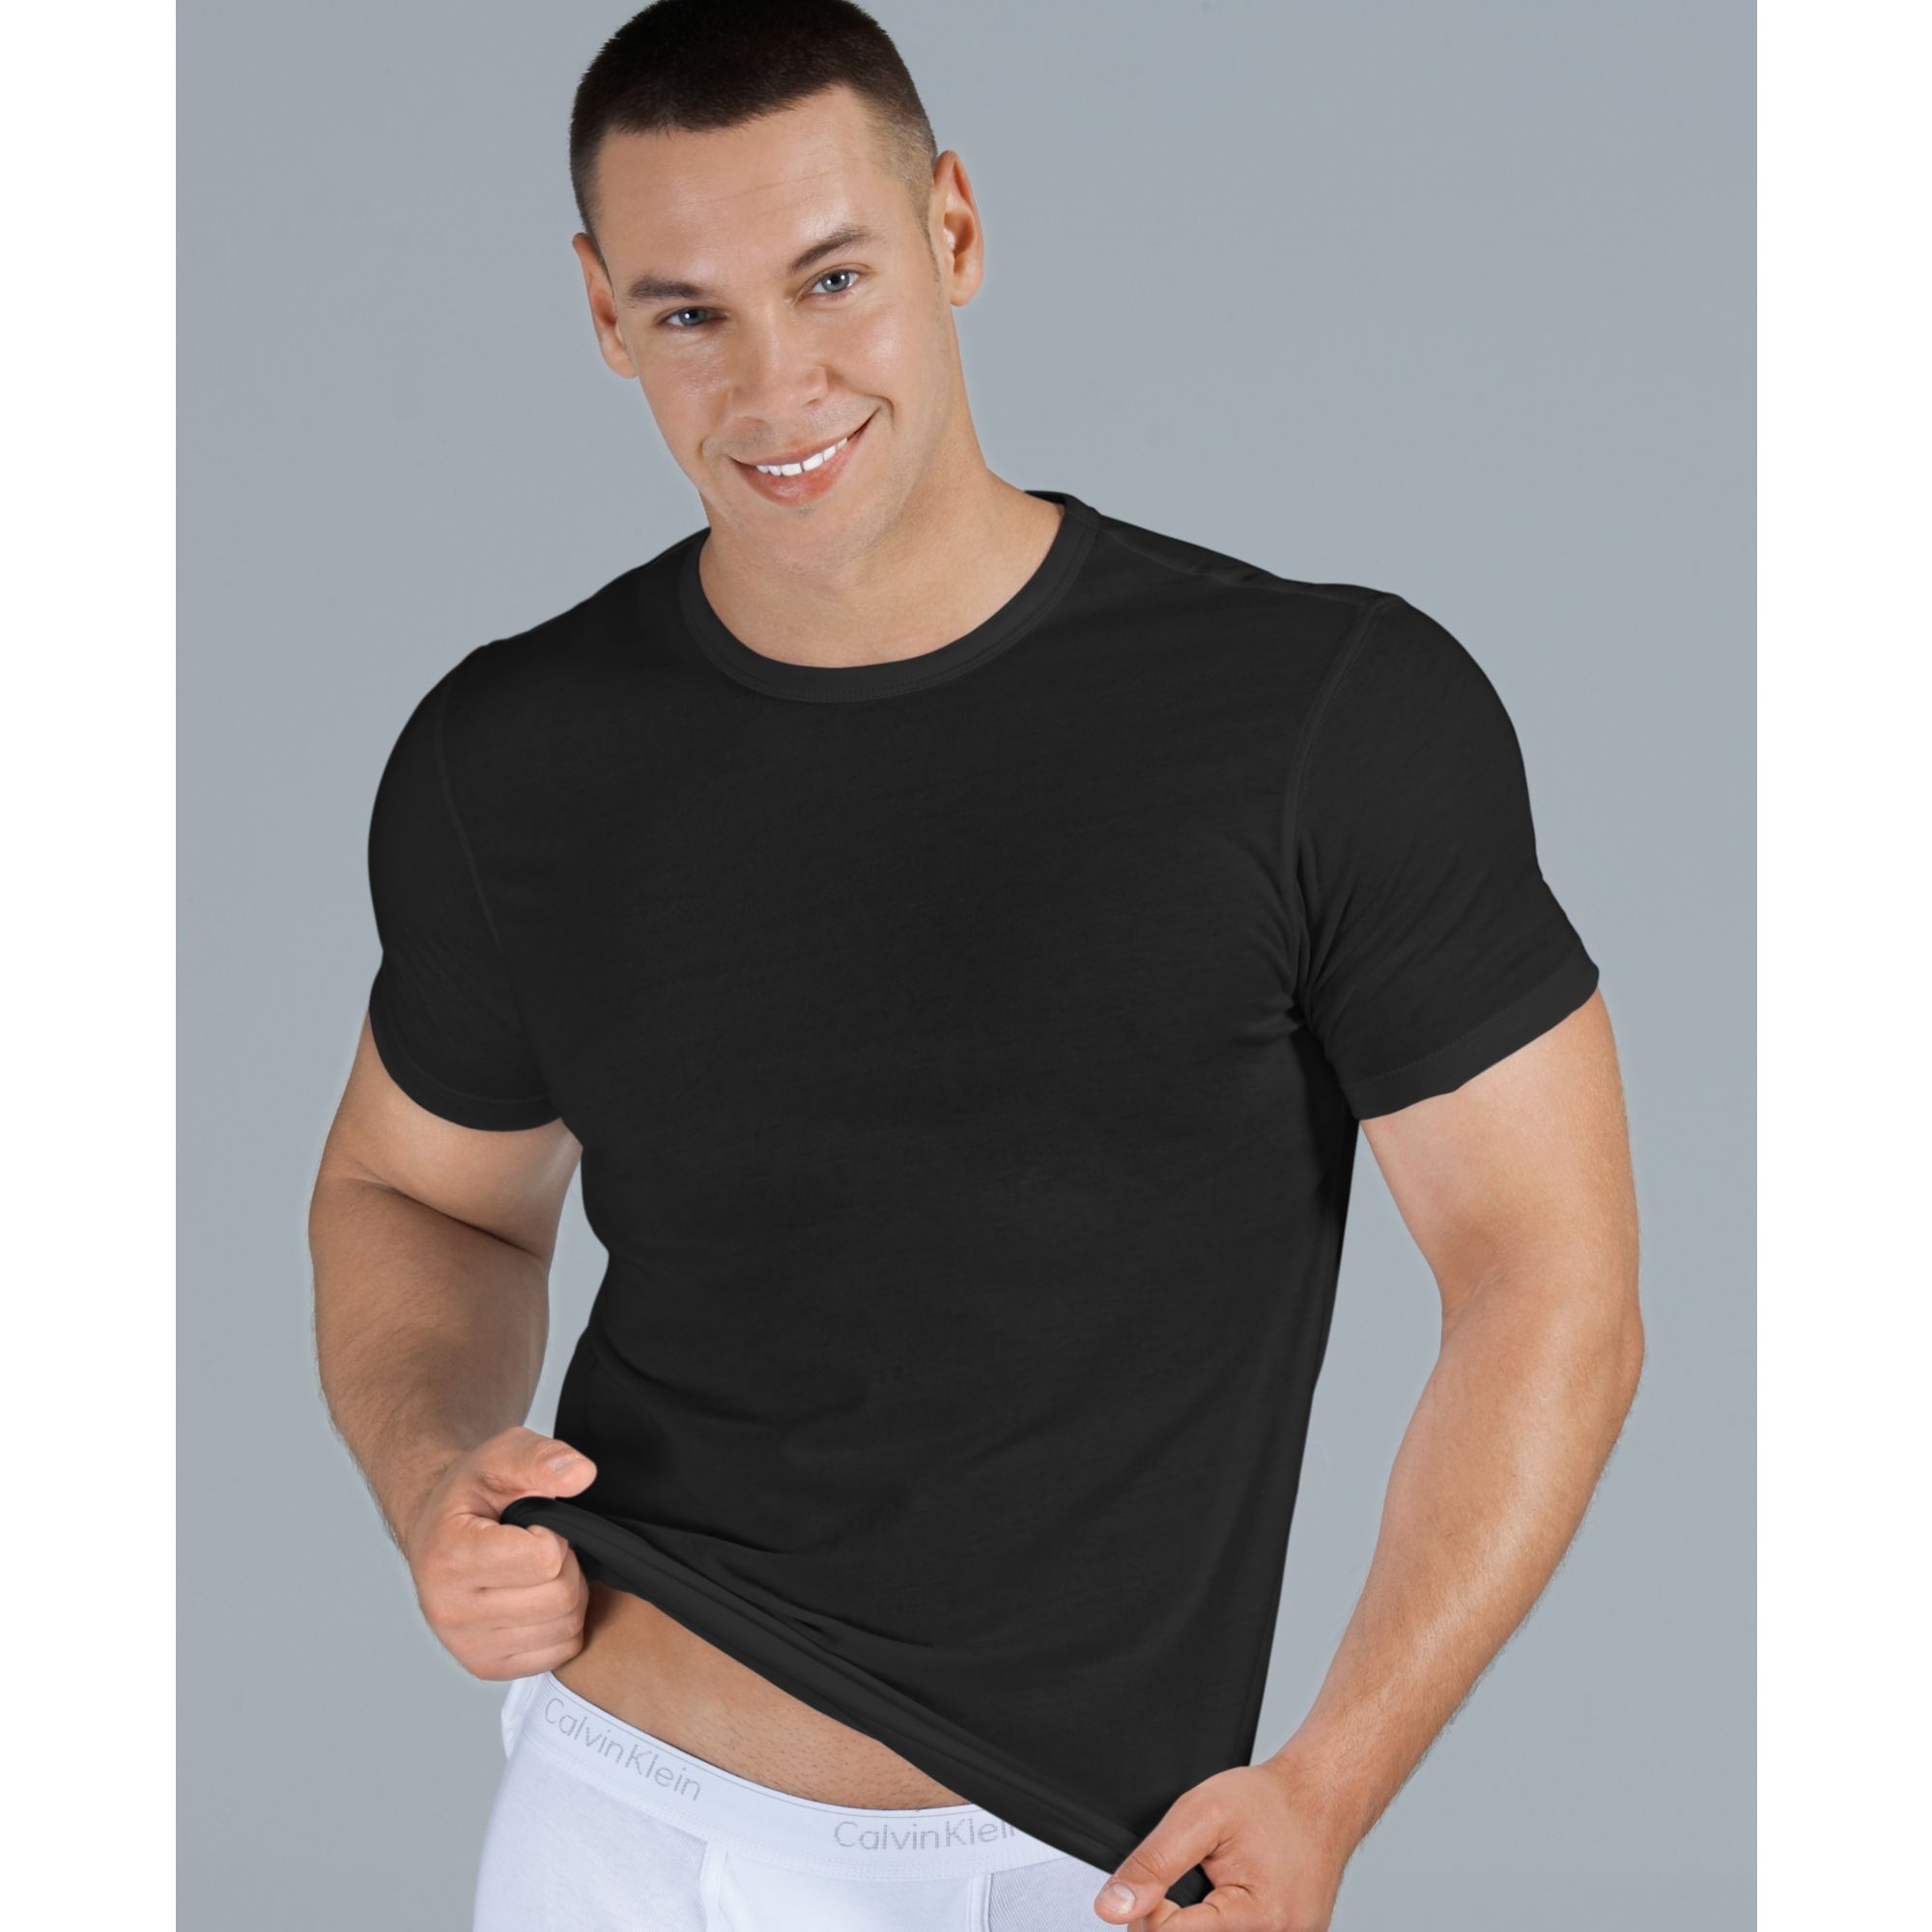 lyst calvin klein body slim fit t shirt 3 pack in black. Black Bedroom Furniture Sets. Home Design Ideas